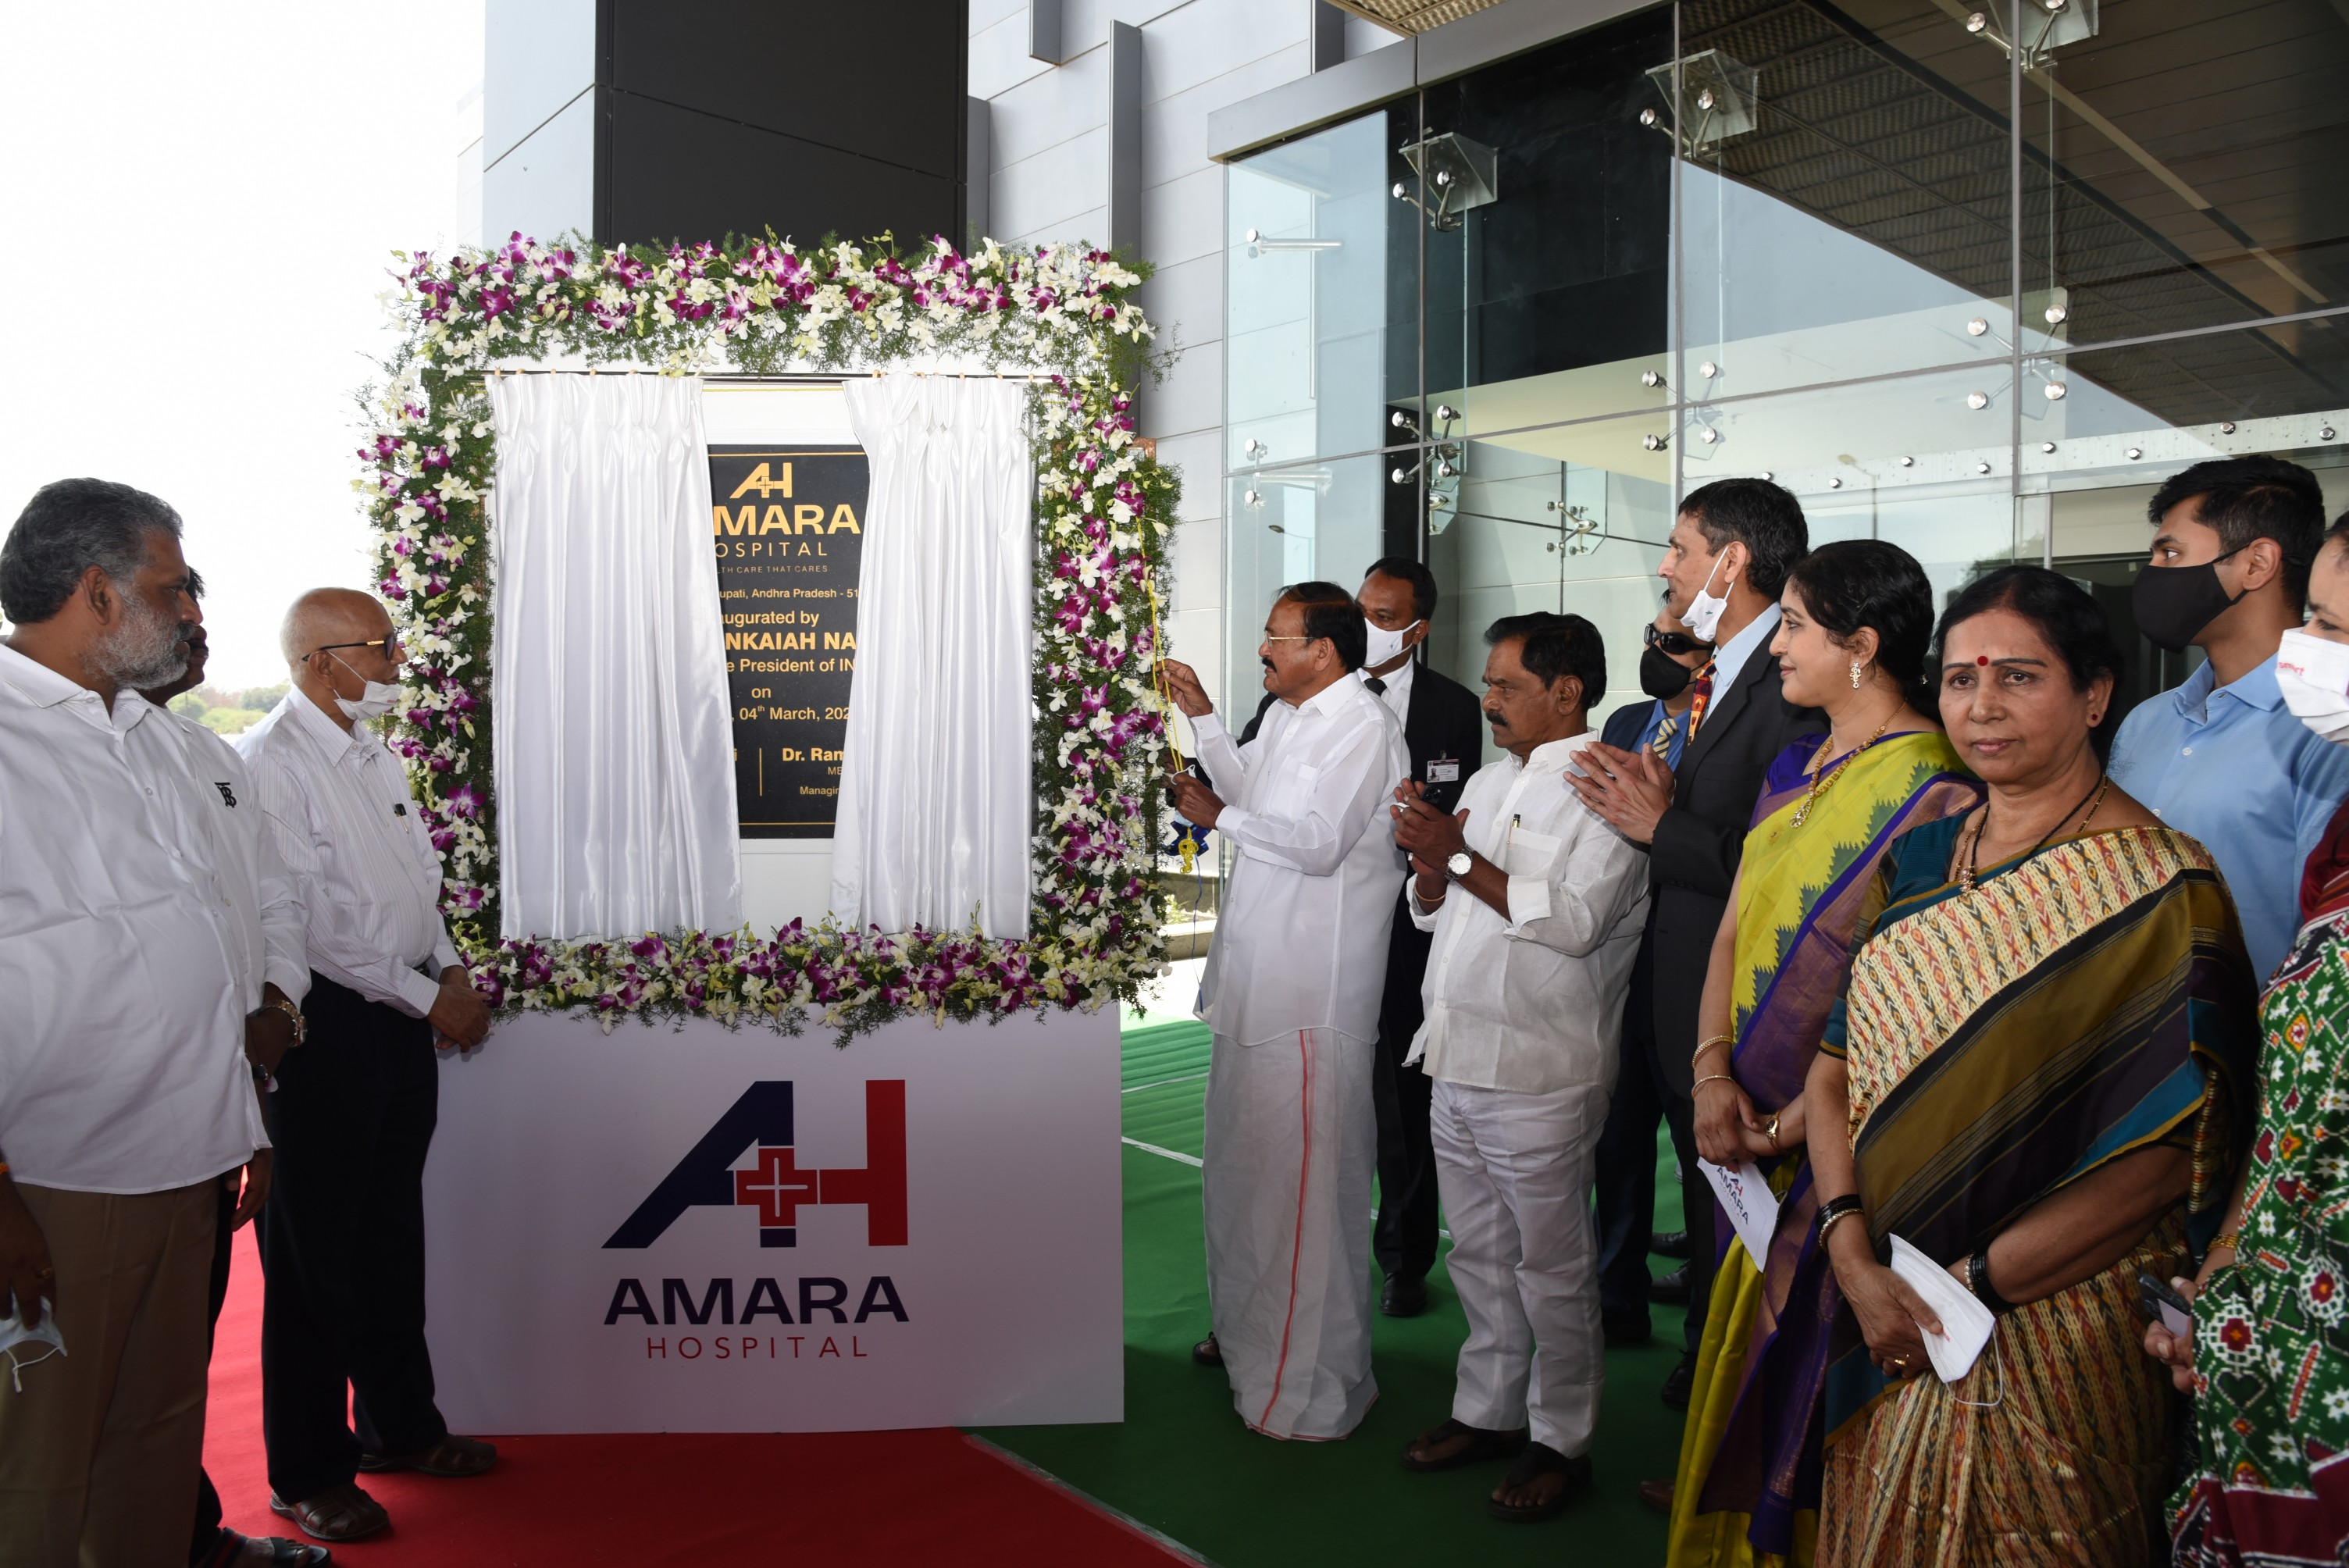 The Vice President, Shri M. Venkaiah Naidu inaugurating the Amara Multispecialty Hospital, in Tirupati on March 04, 2021.